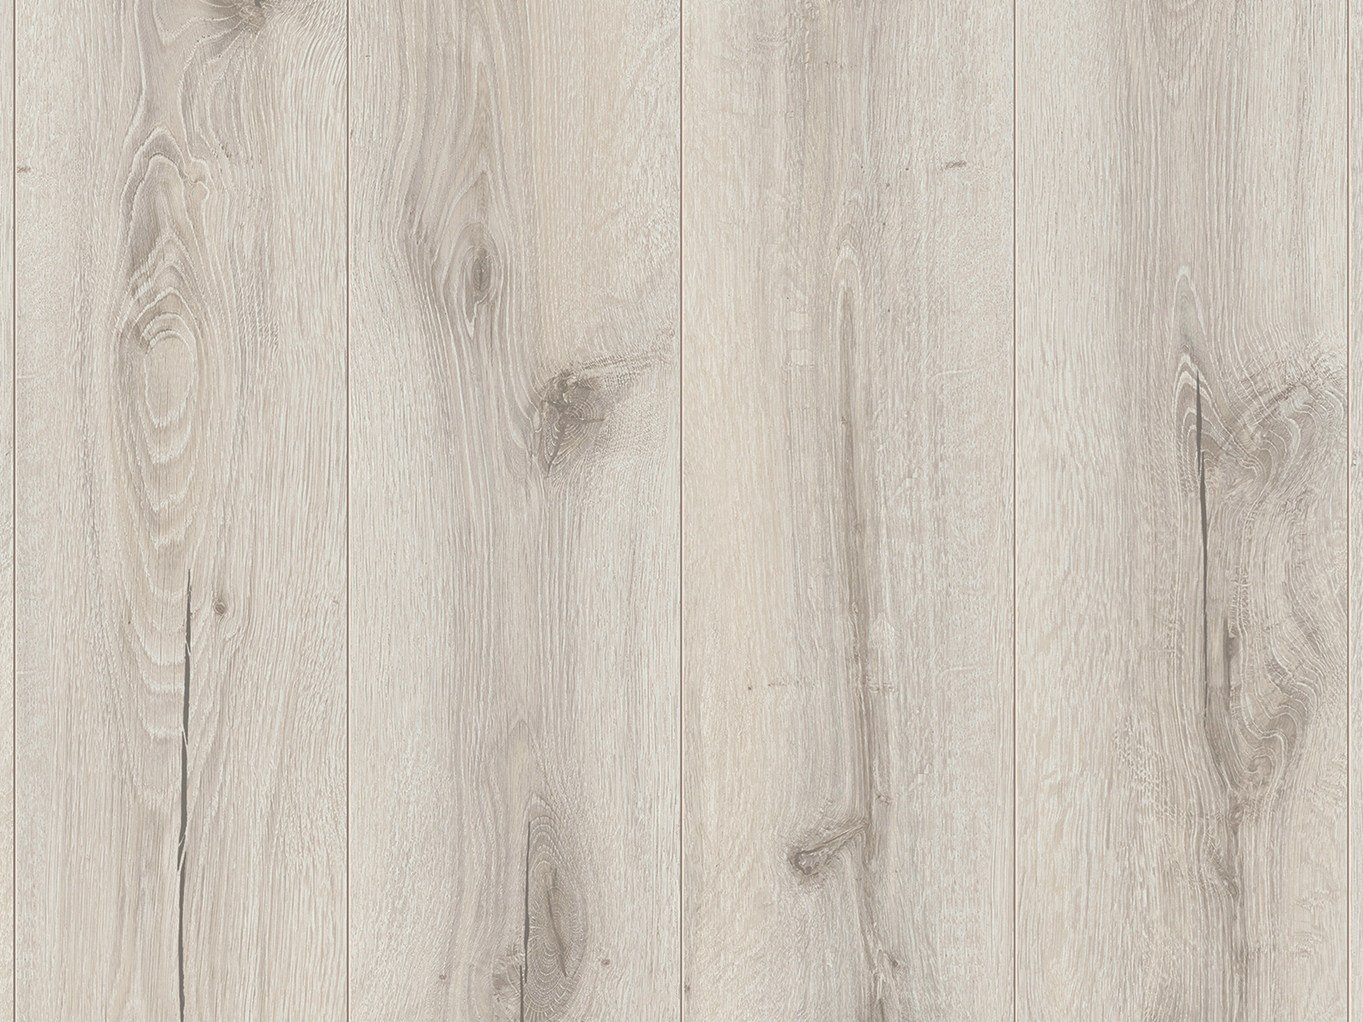 Laminate Flooring Beach House Oak By Pergo